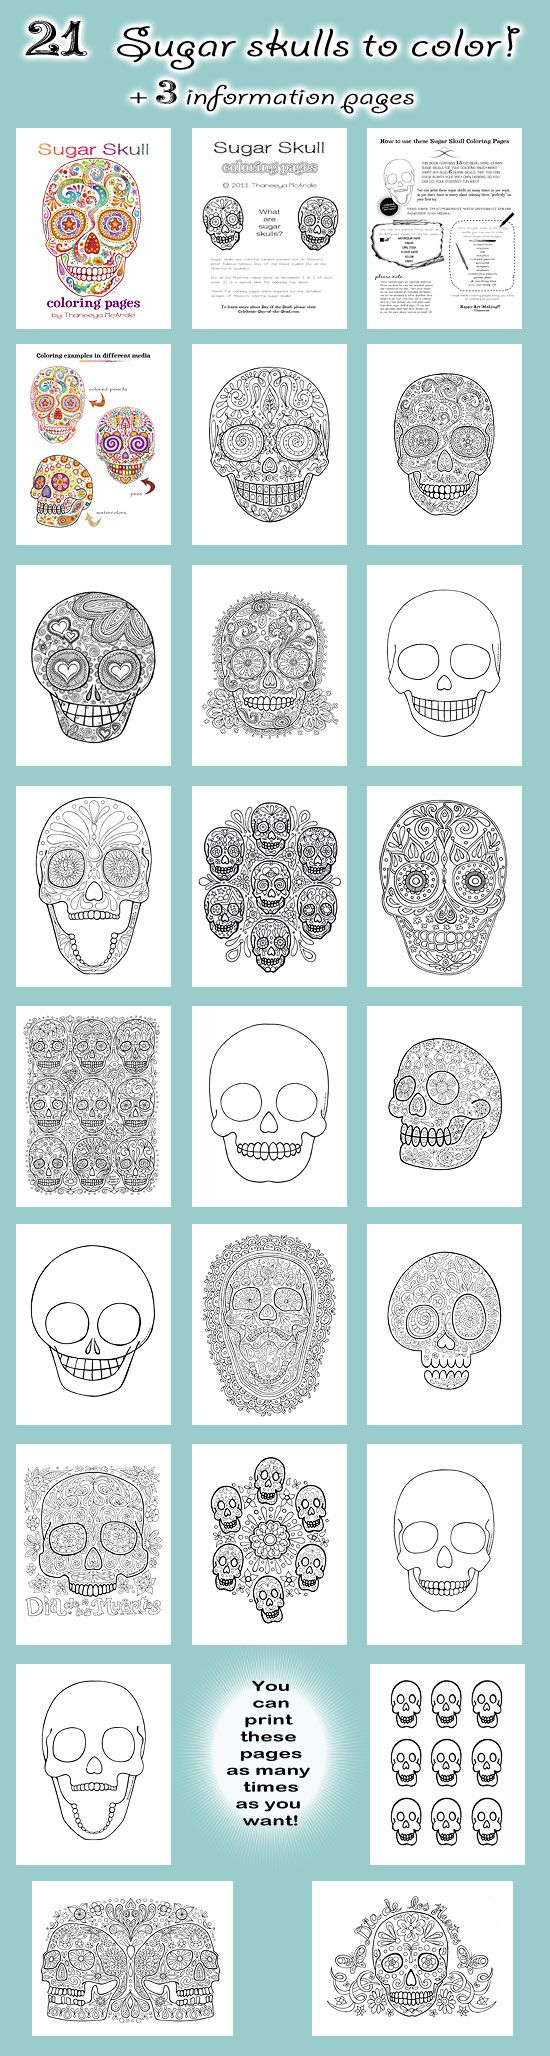 Sugar Skull Coloring Pages Detailed Day Of The Dead Coloring Pages By Thaneeya M